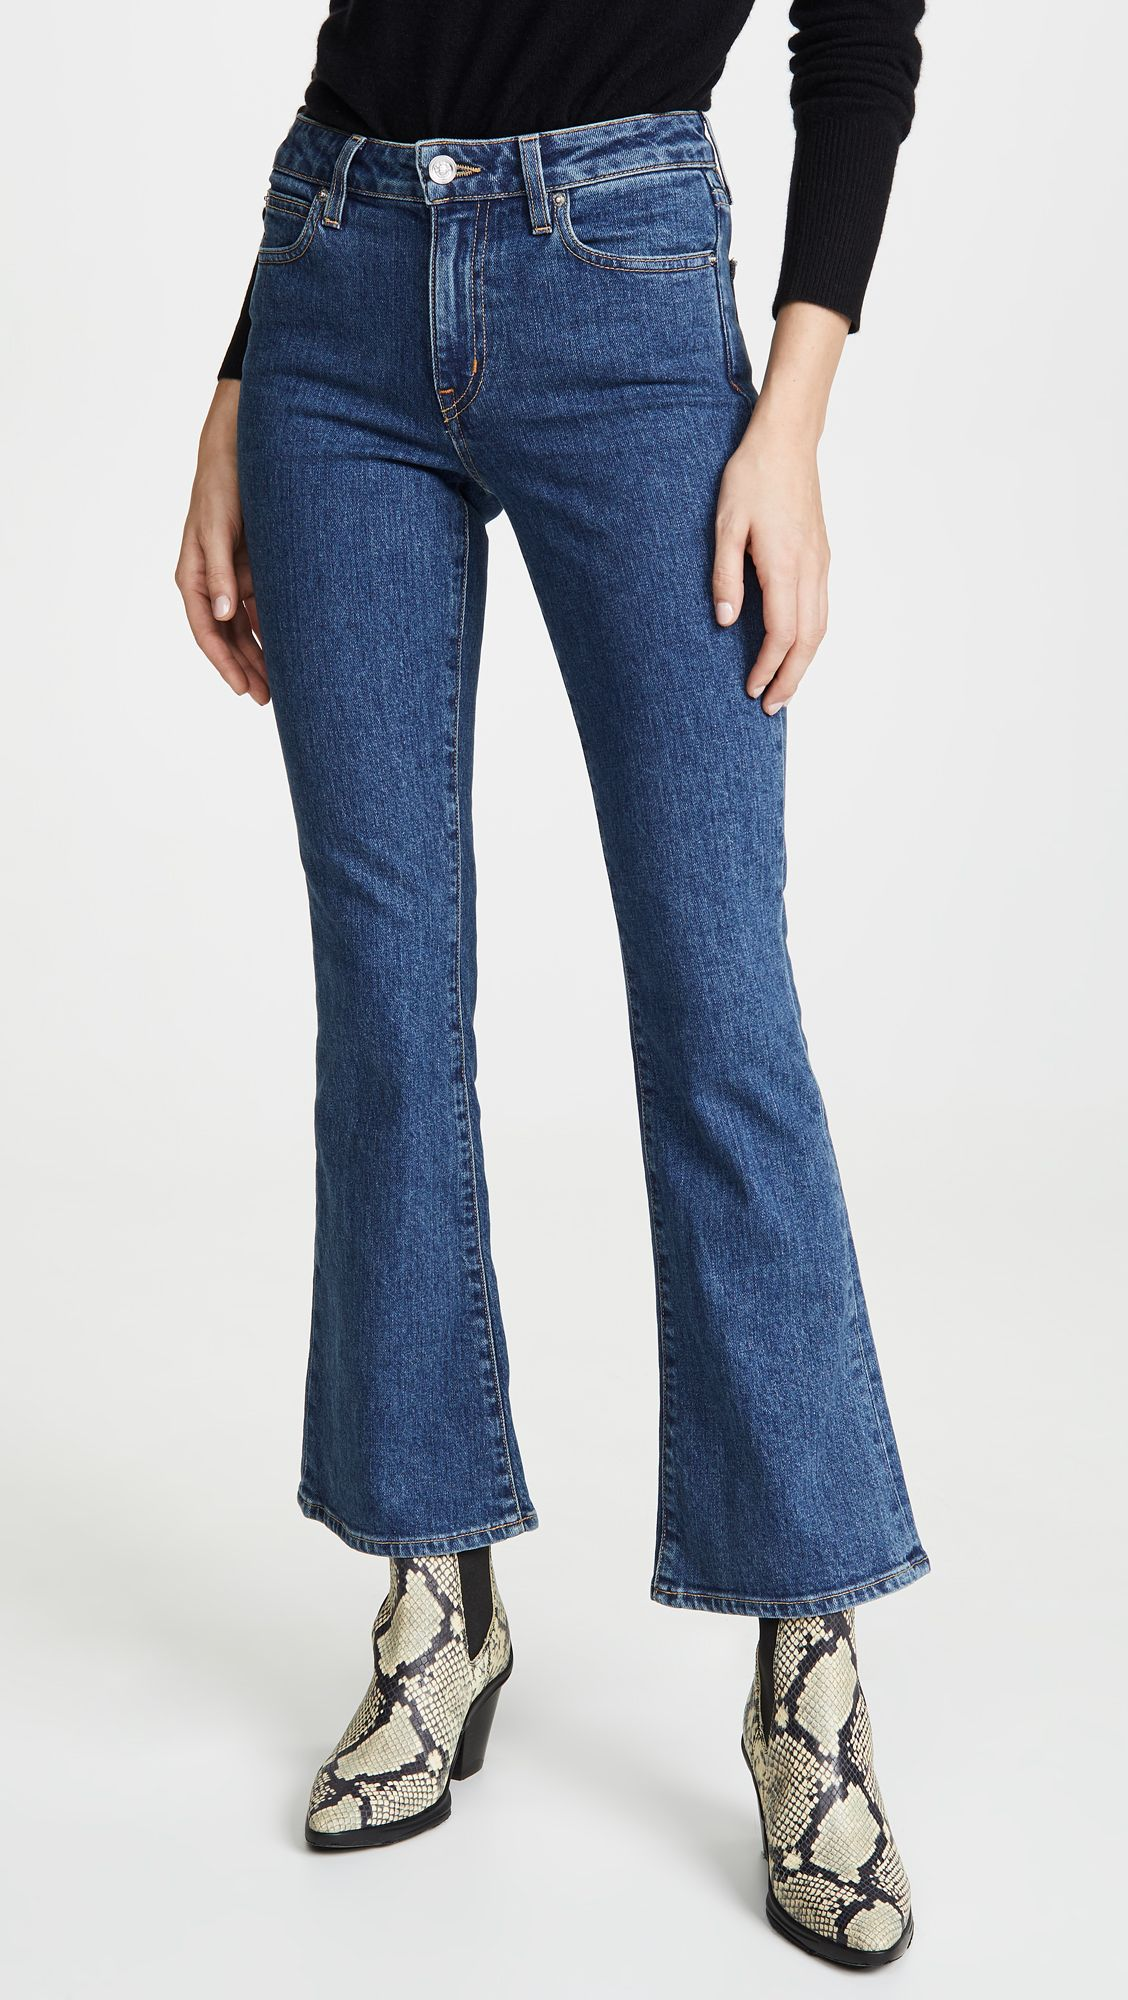 My Friend Asked What to Wear With Flare Jeans, and I Suggested These 6 Basics 26